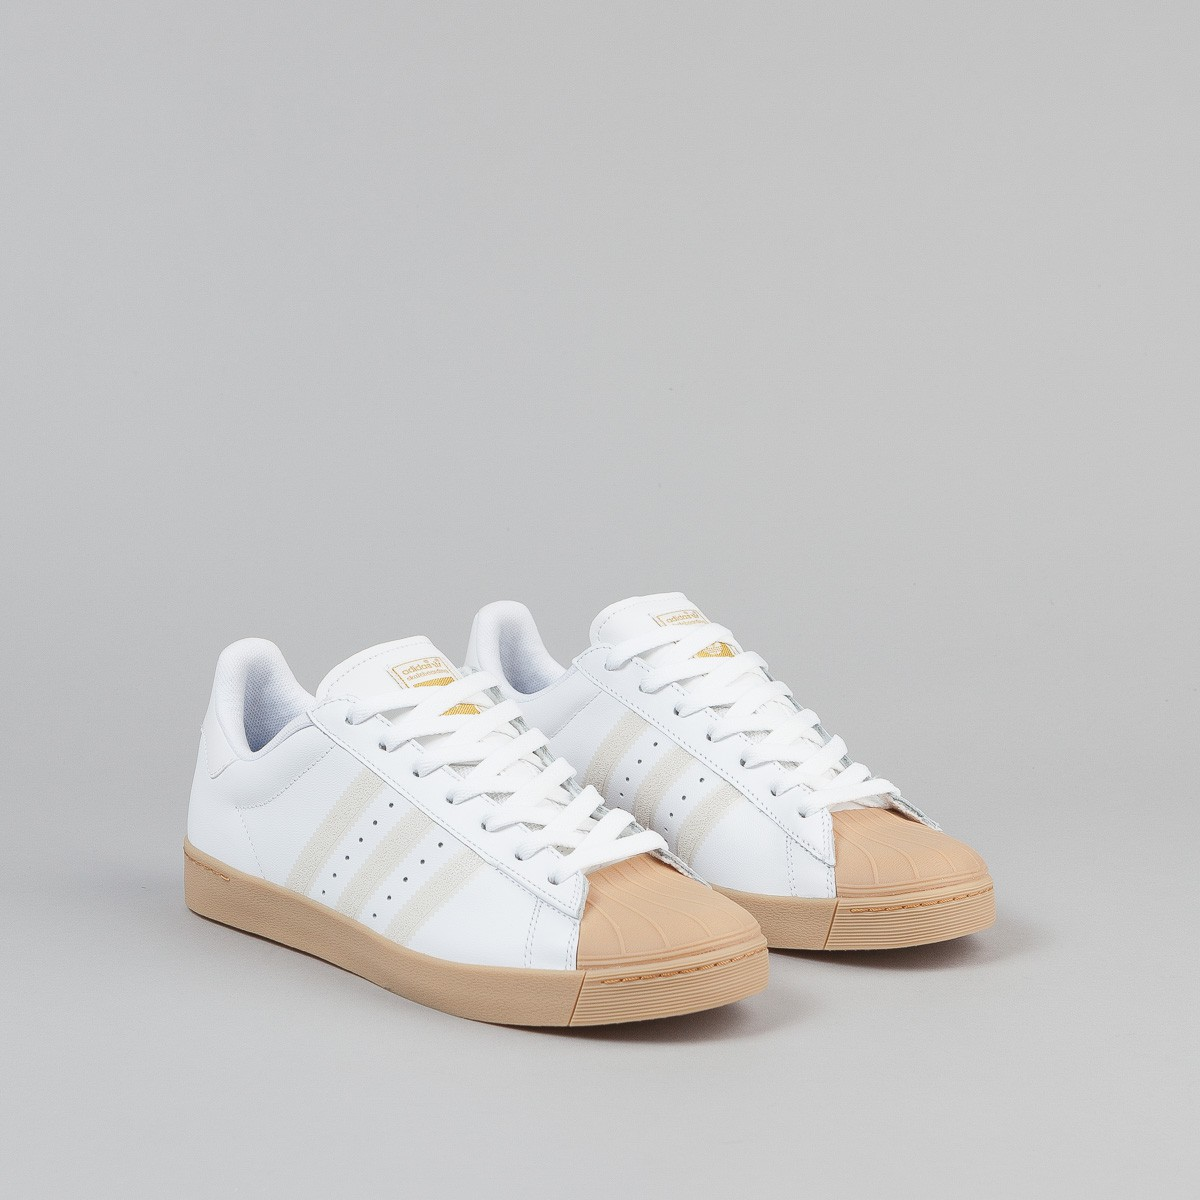 adidas-superstar-vulc-shoes-ftwr-white-ftwr-white-gum-1 (2).jpg